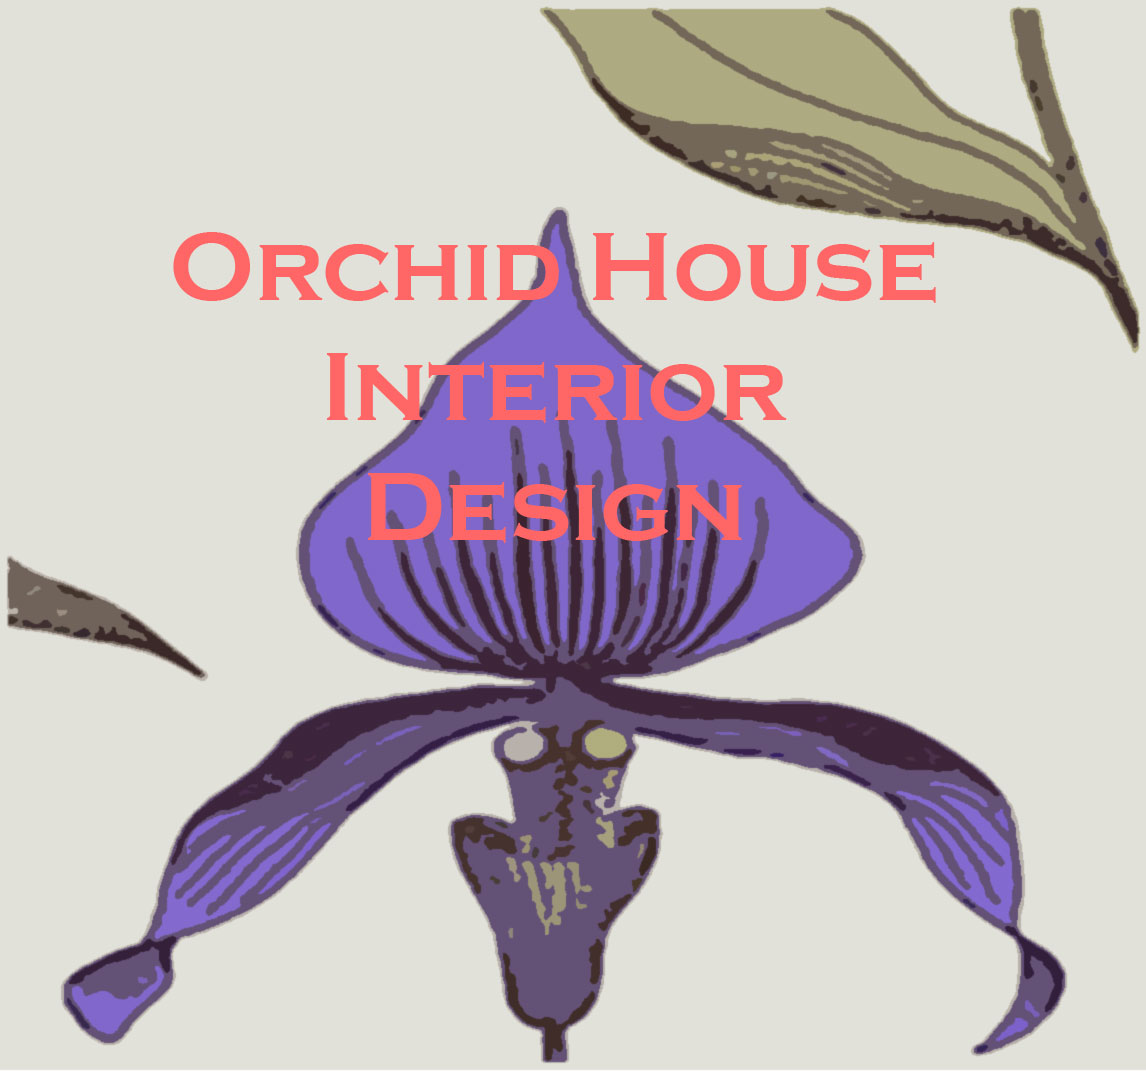 Orchid House Interior Design